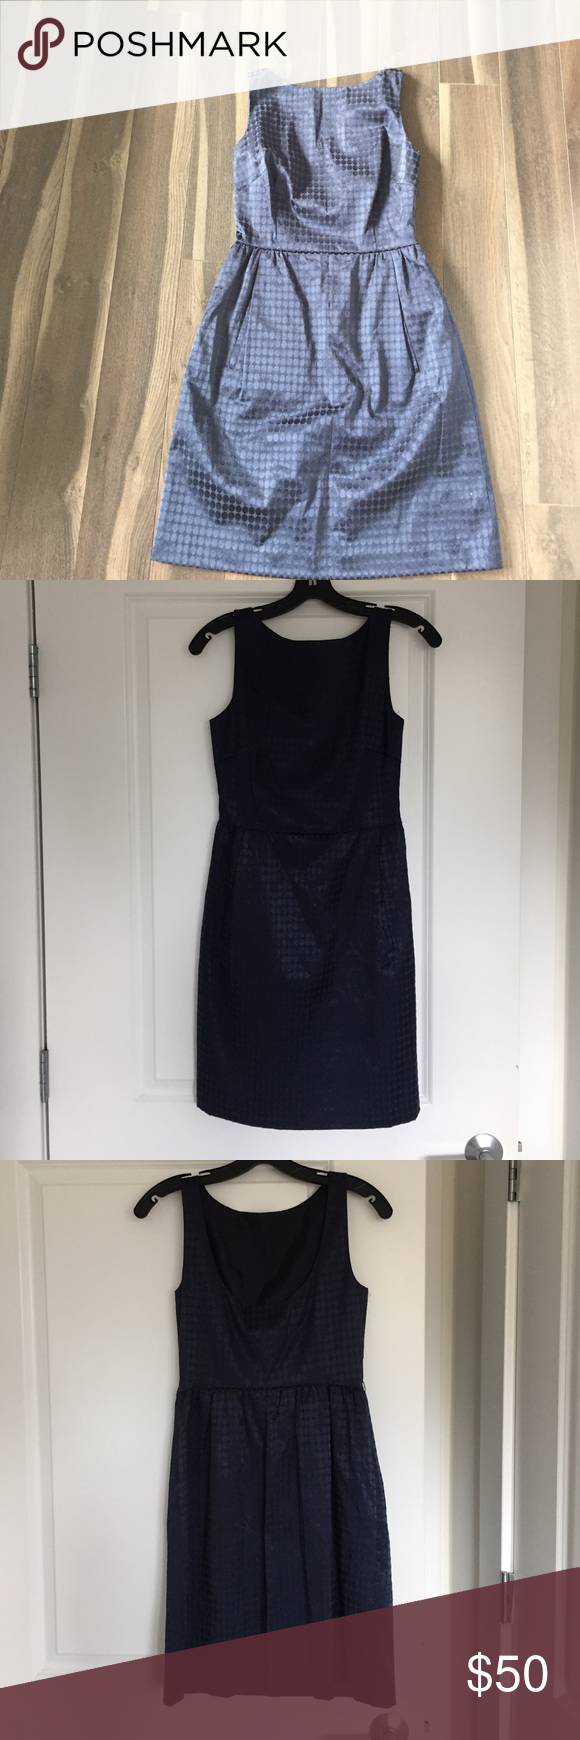 Navy blue cocktail dress Fully lined, perfect for cocktail party or wedding. Micheal Kors navy cocktail dress. Scooped back. MICHAEL Michael Kors Dresses